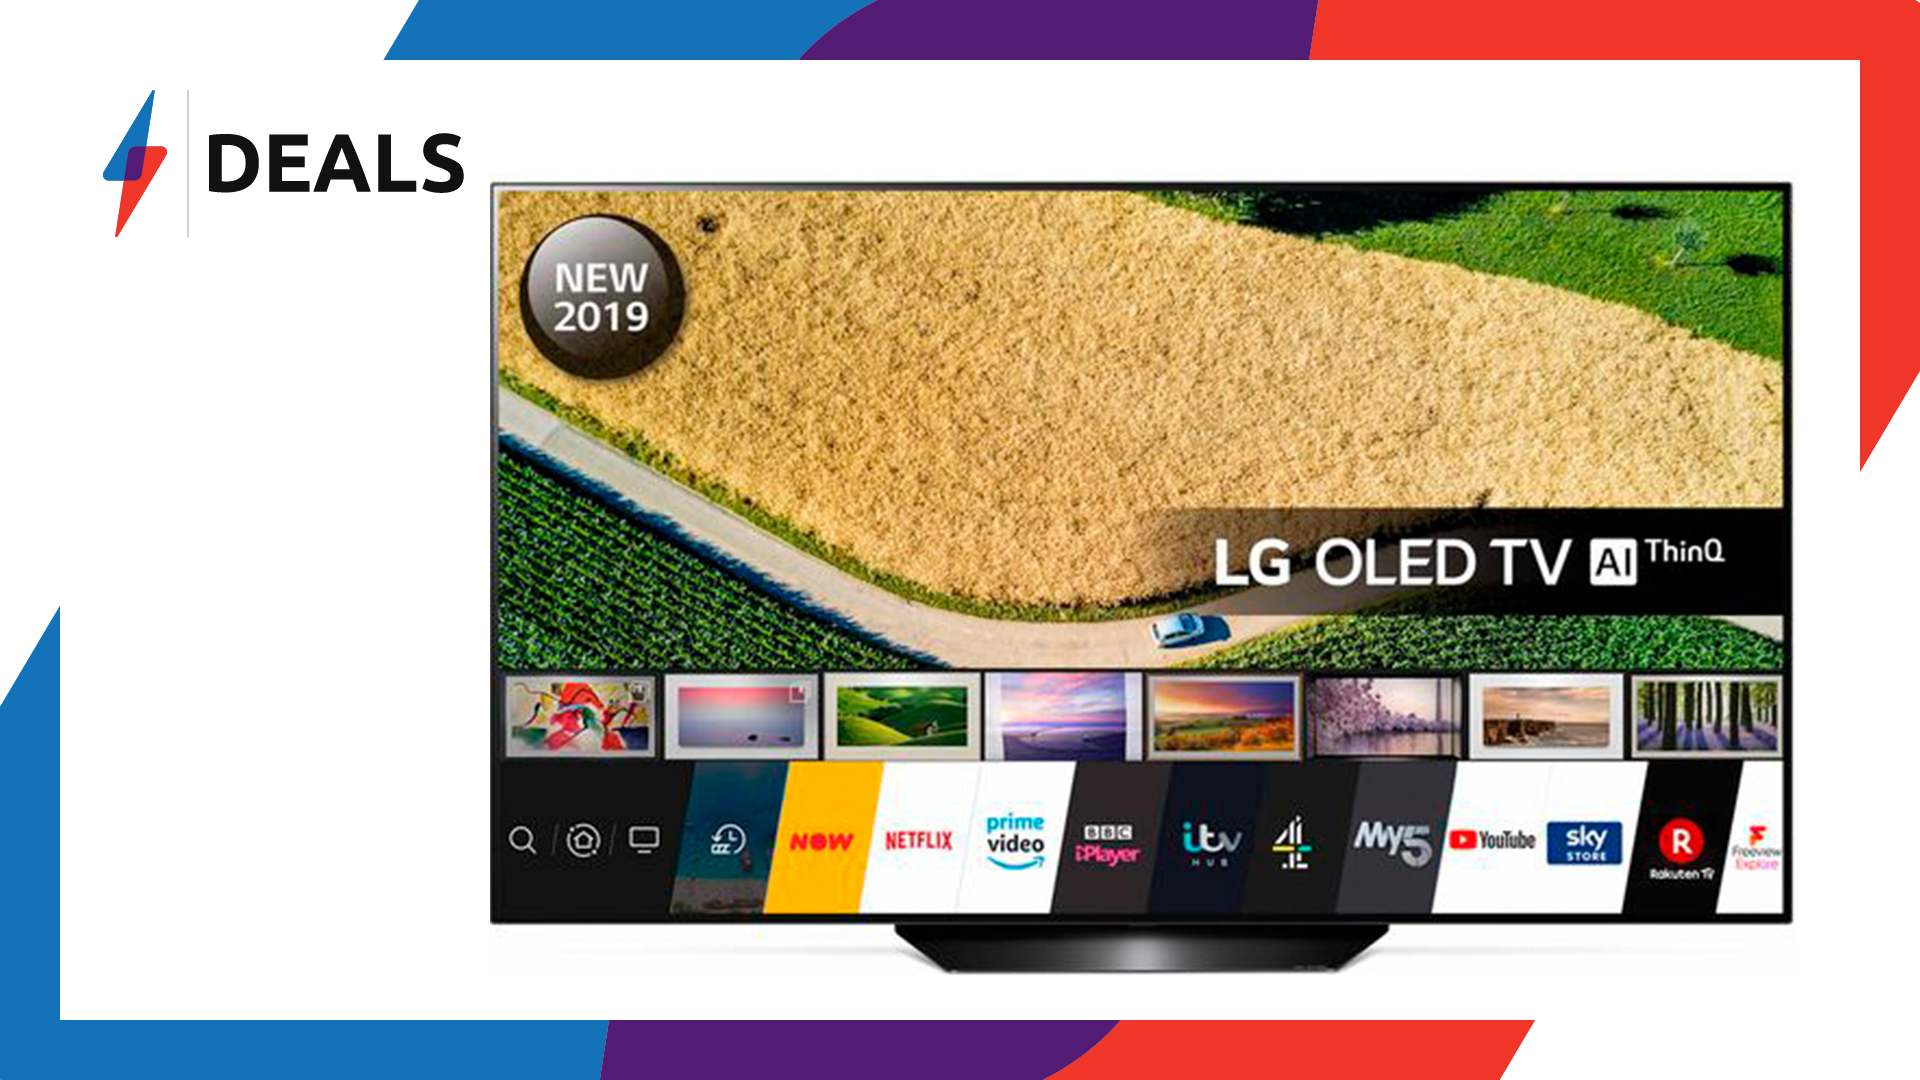 Save a massive £200 with this 55″ LG OLED TV price drop